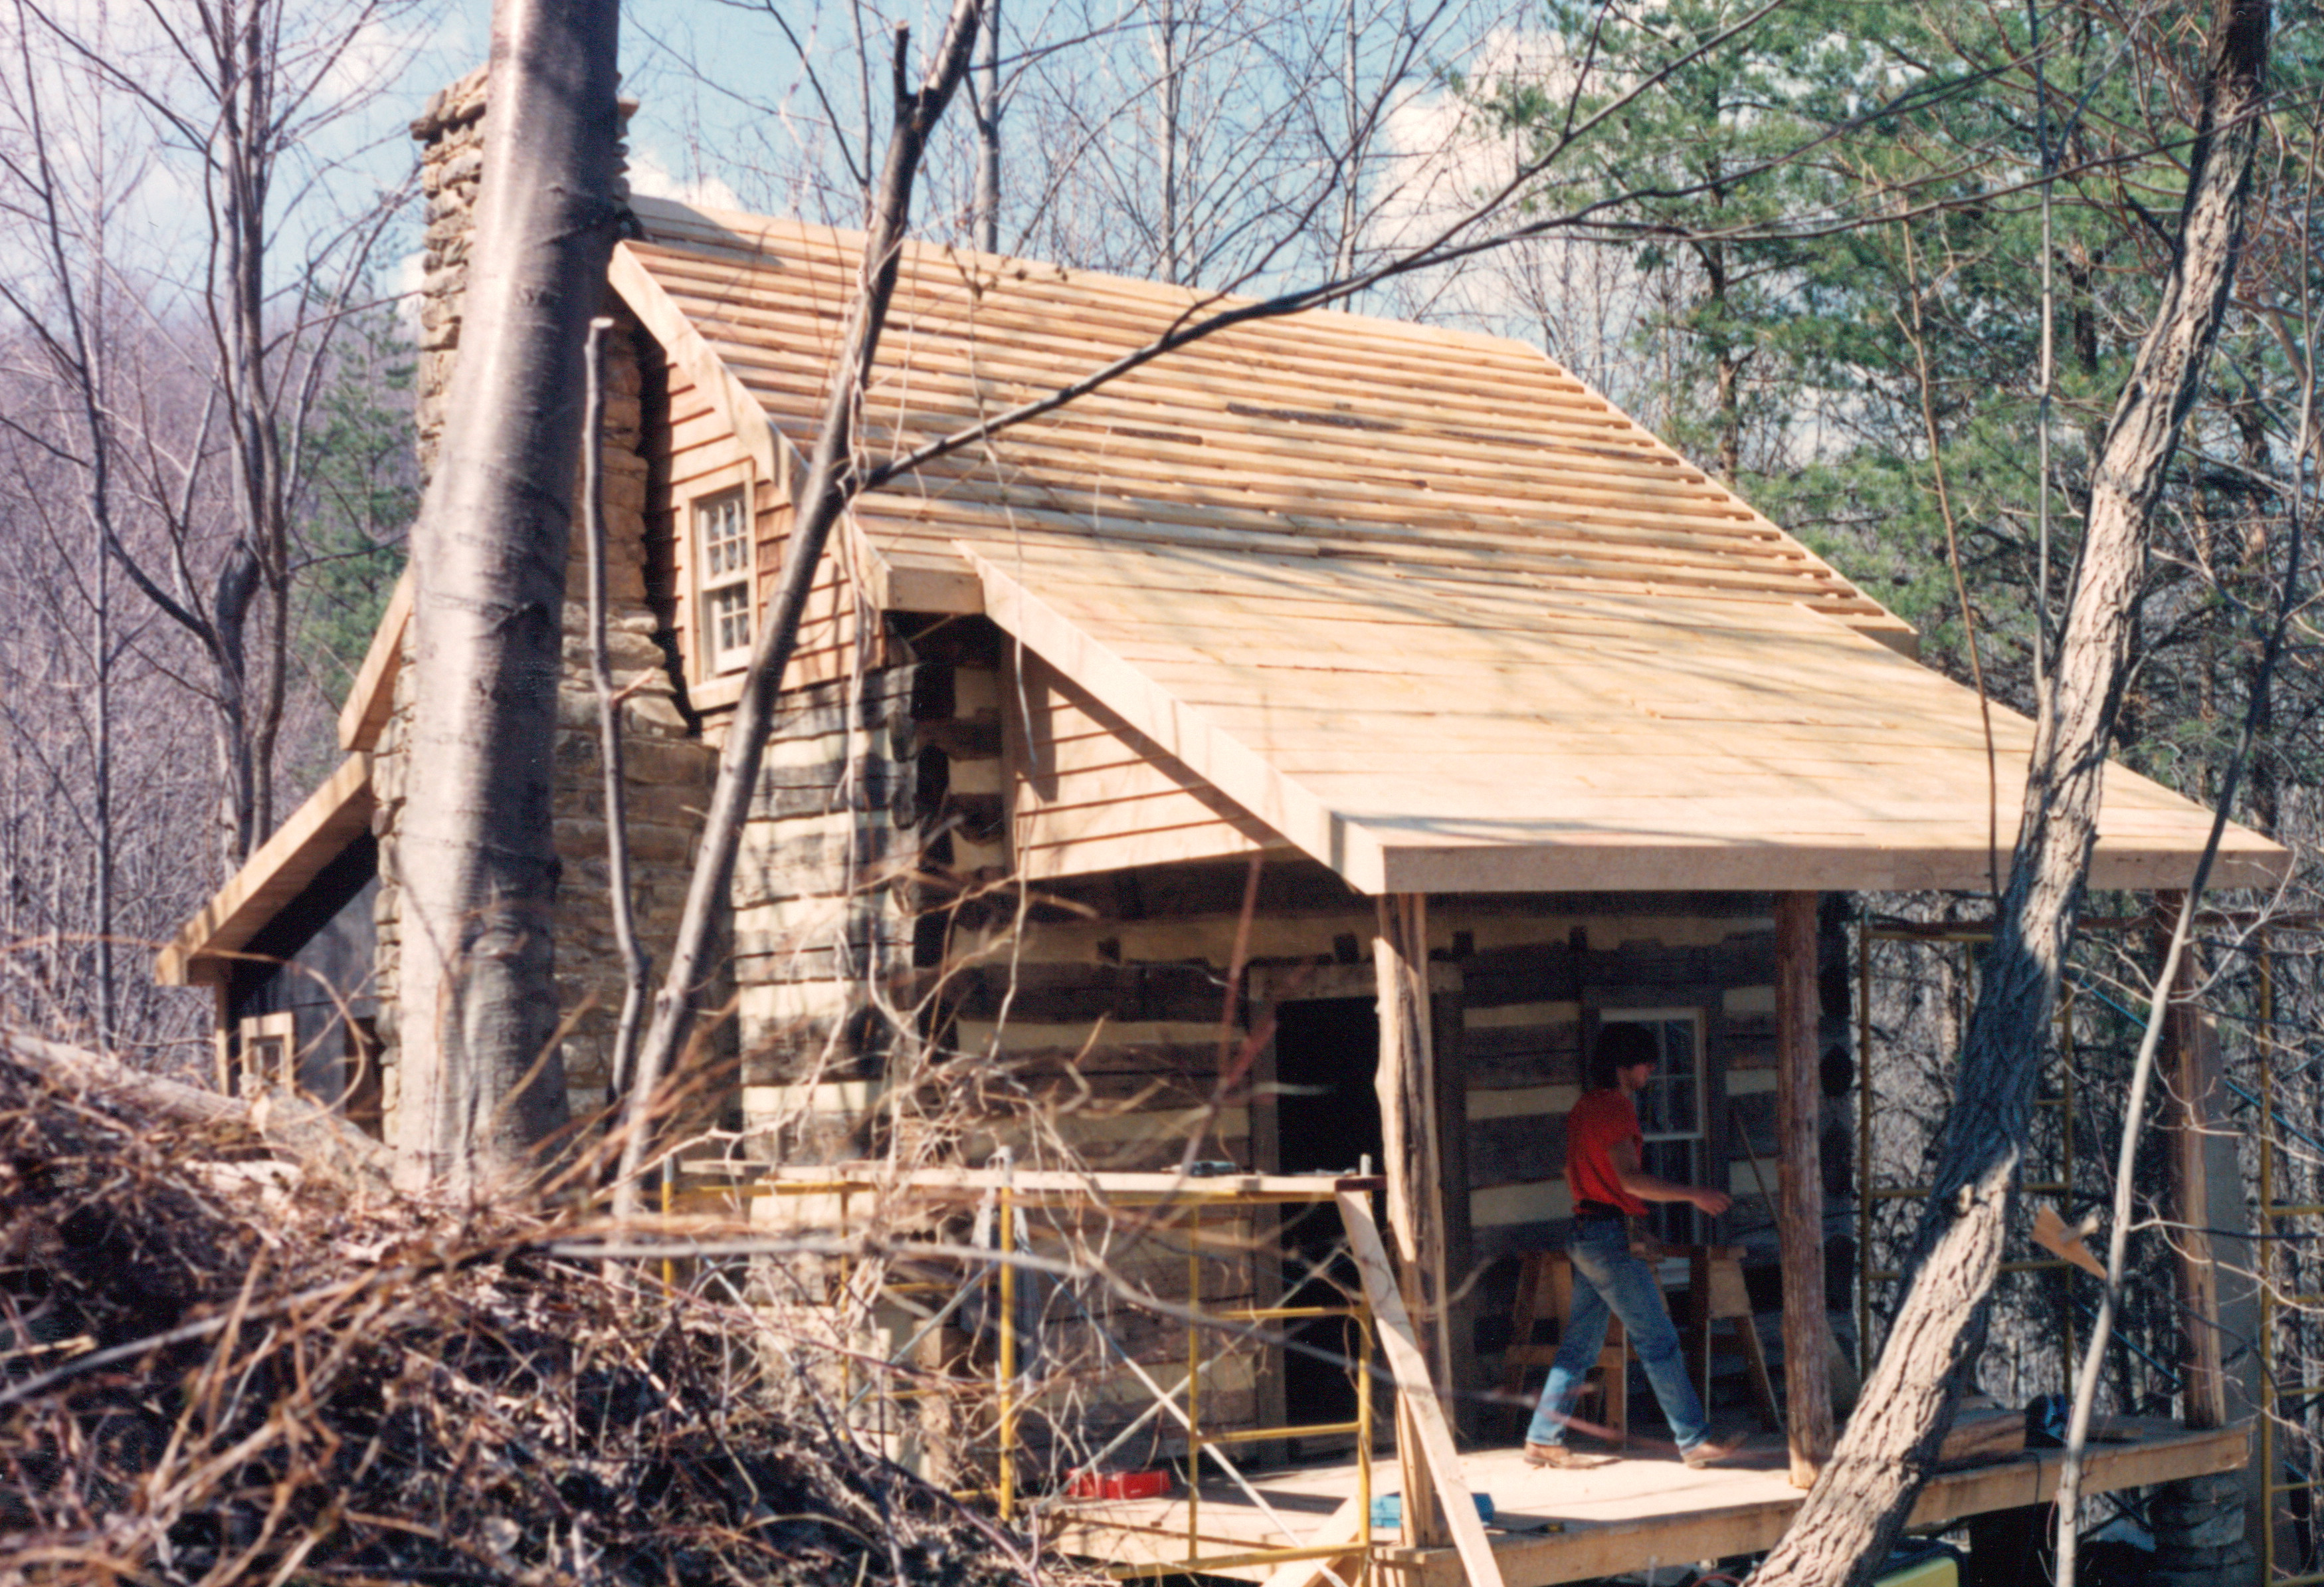 Beau As You Can See In This Photo, We Had Come Far In The Restoration Of This  Fine Little Cabin. The Logs Are Now Chinked, The Porch Has Been Rebuilt, ...